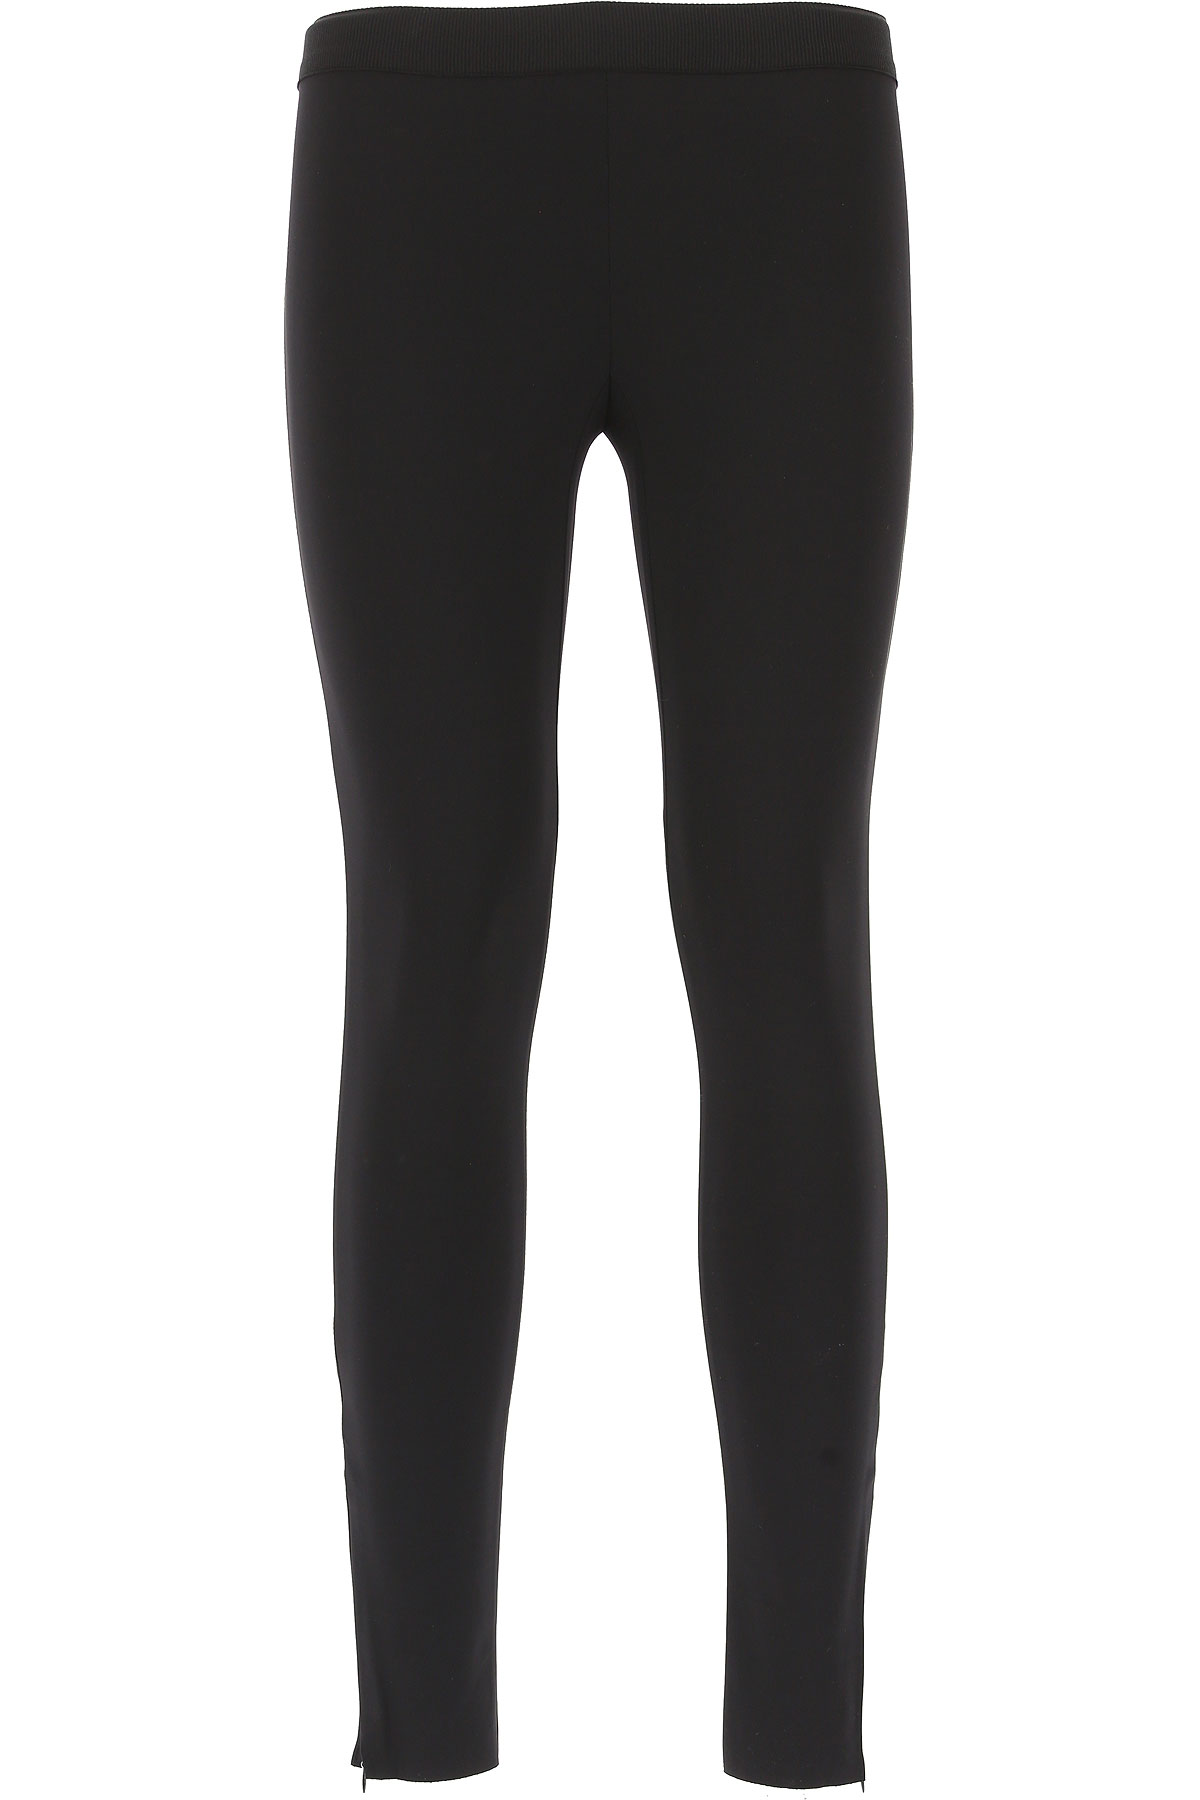 Image of Liviana Conti Pants for Women, Black, polyamide, 2017, 24 26 28 30